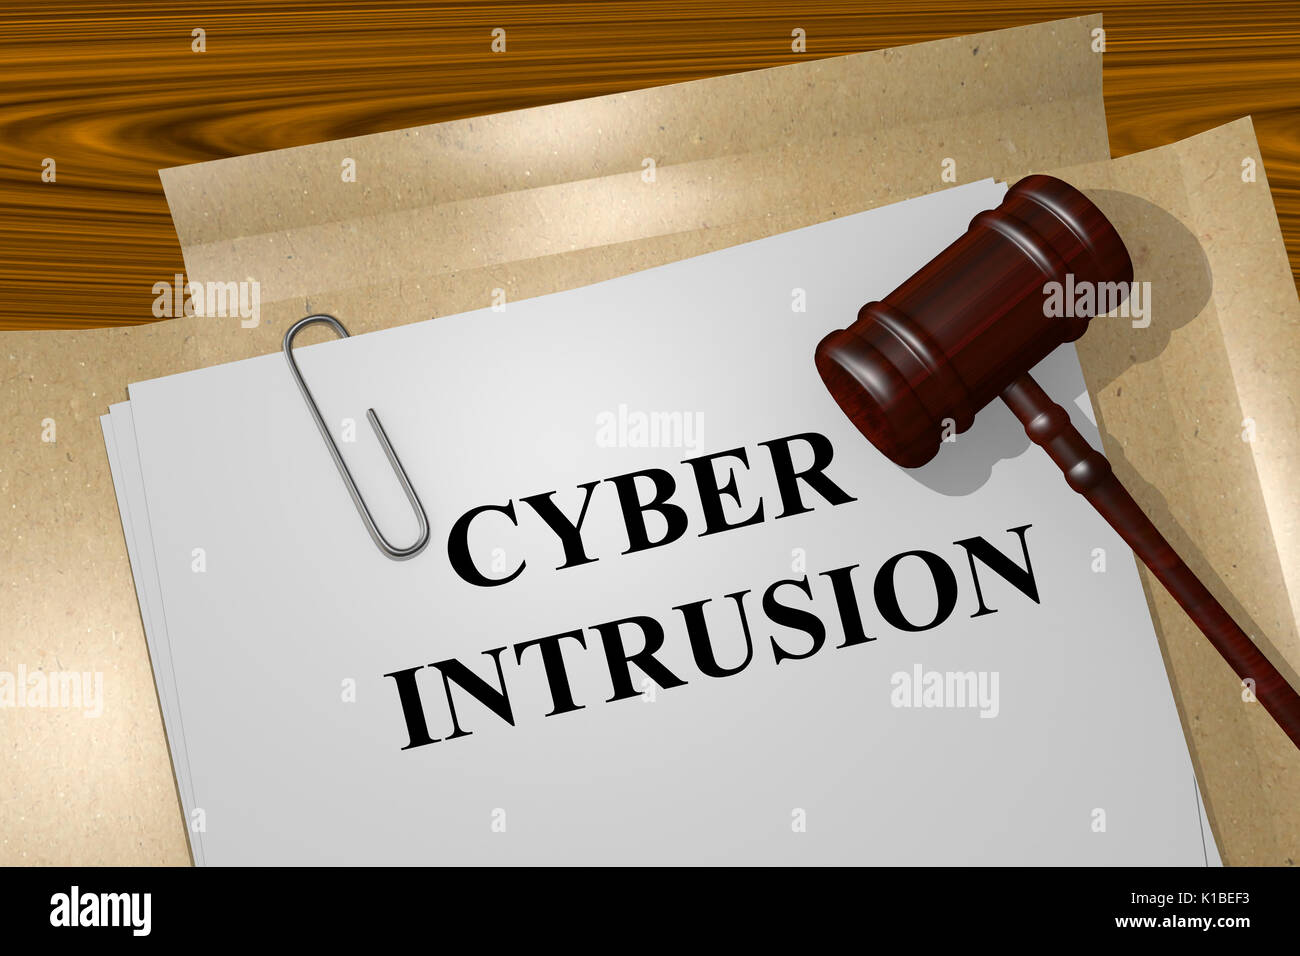 Render illustration of Cyber Intrusion Title On Legal Documents - Stock Image